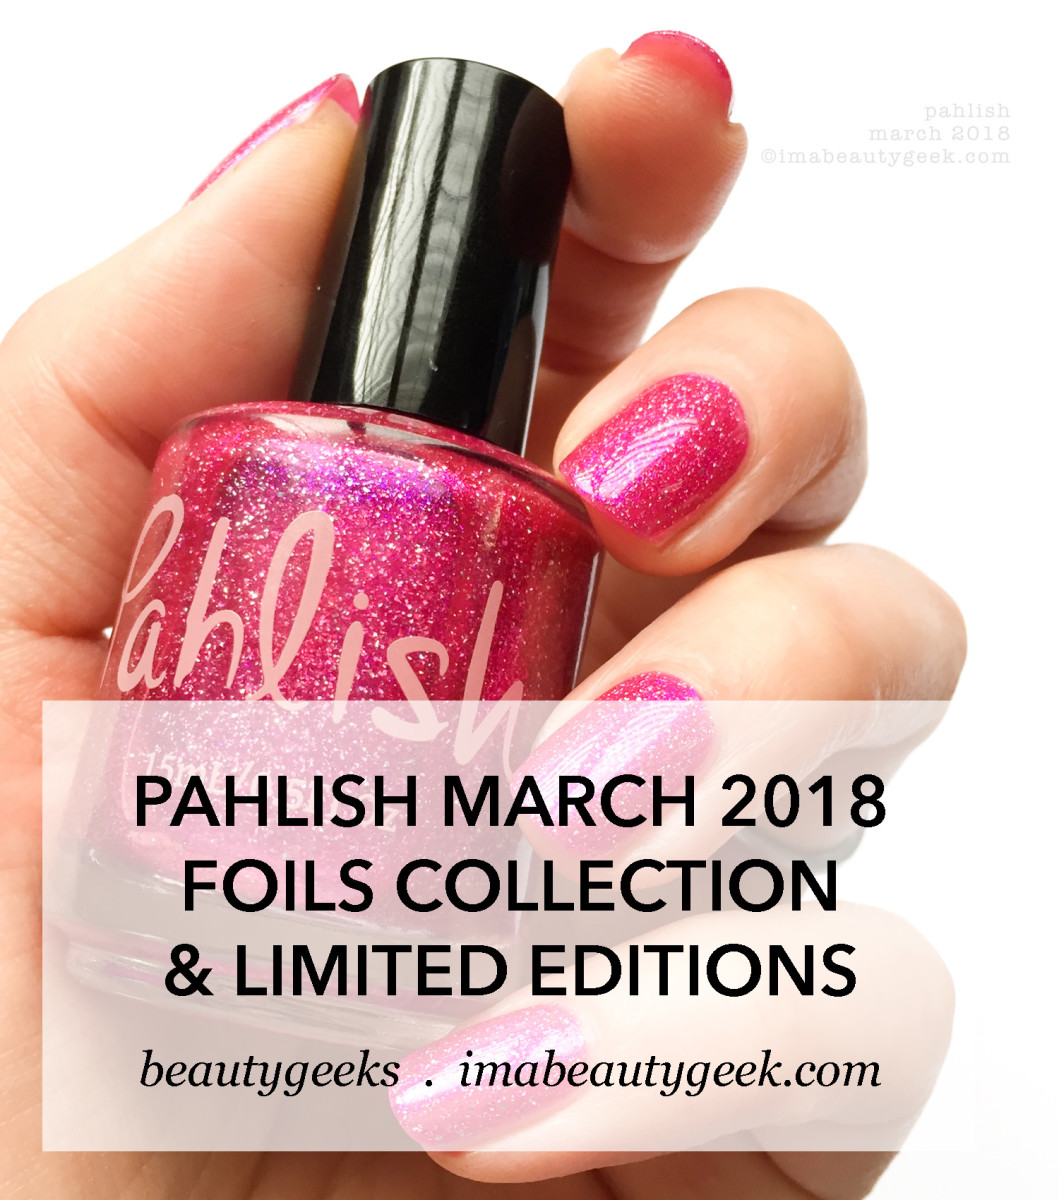 Pahlish March 2018 Foils Collection Swatches and Limited Editions